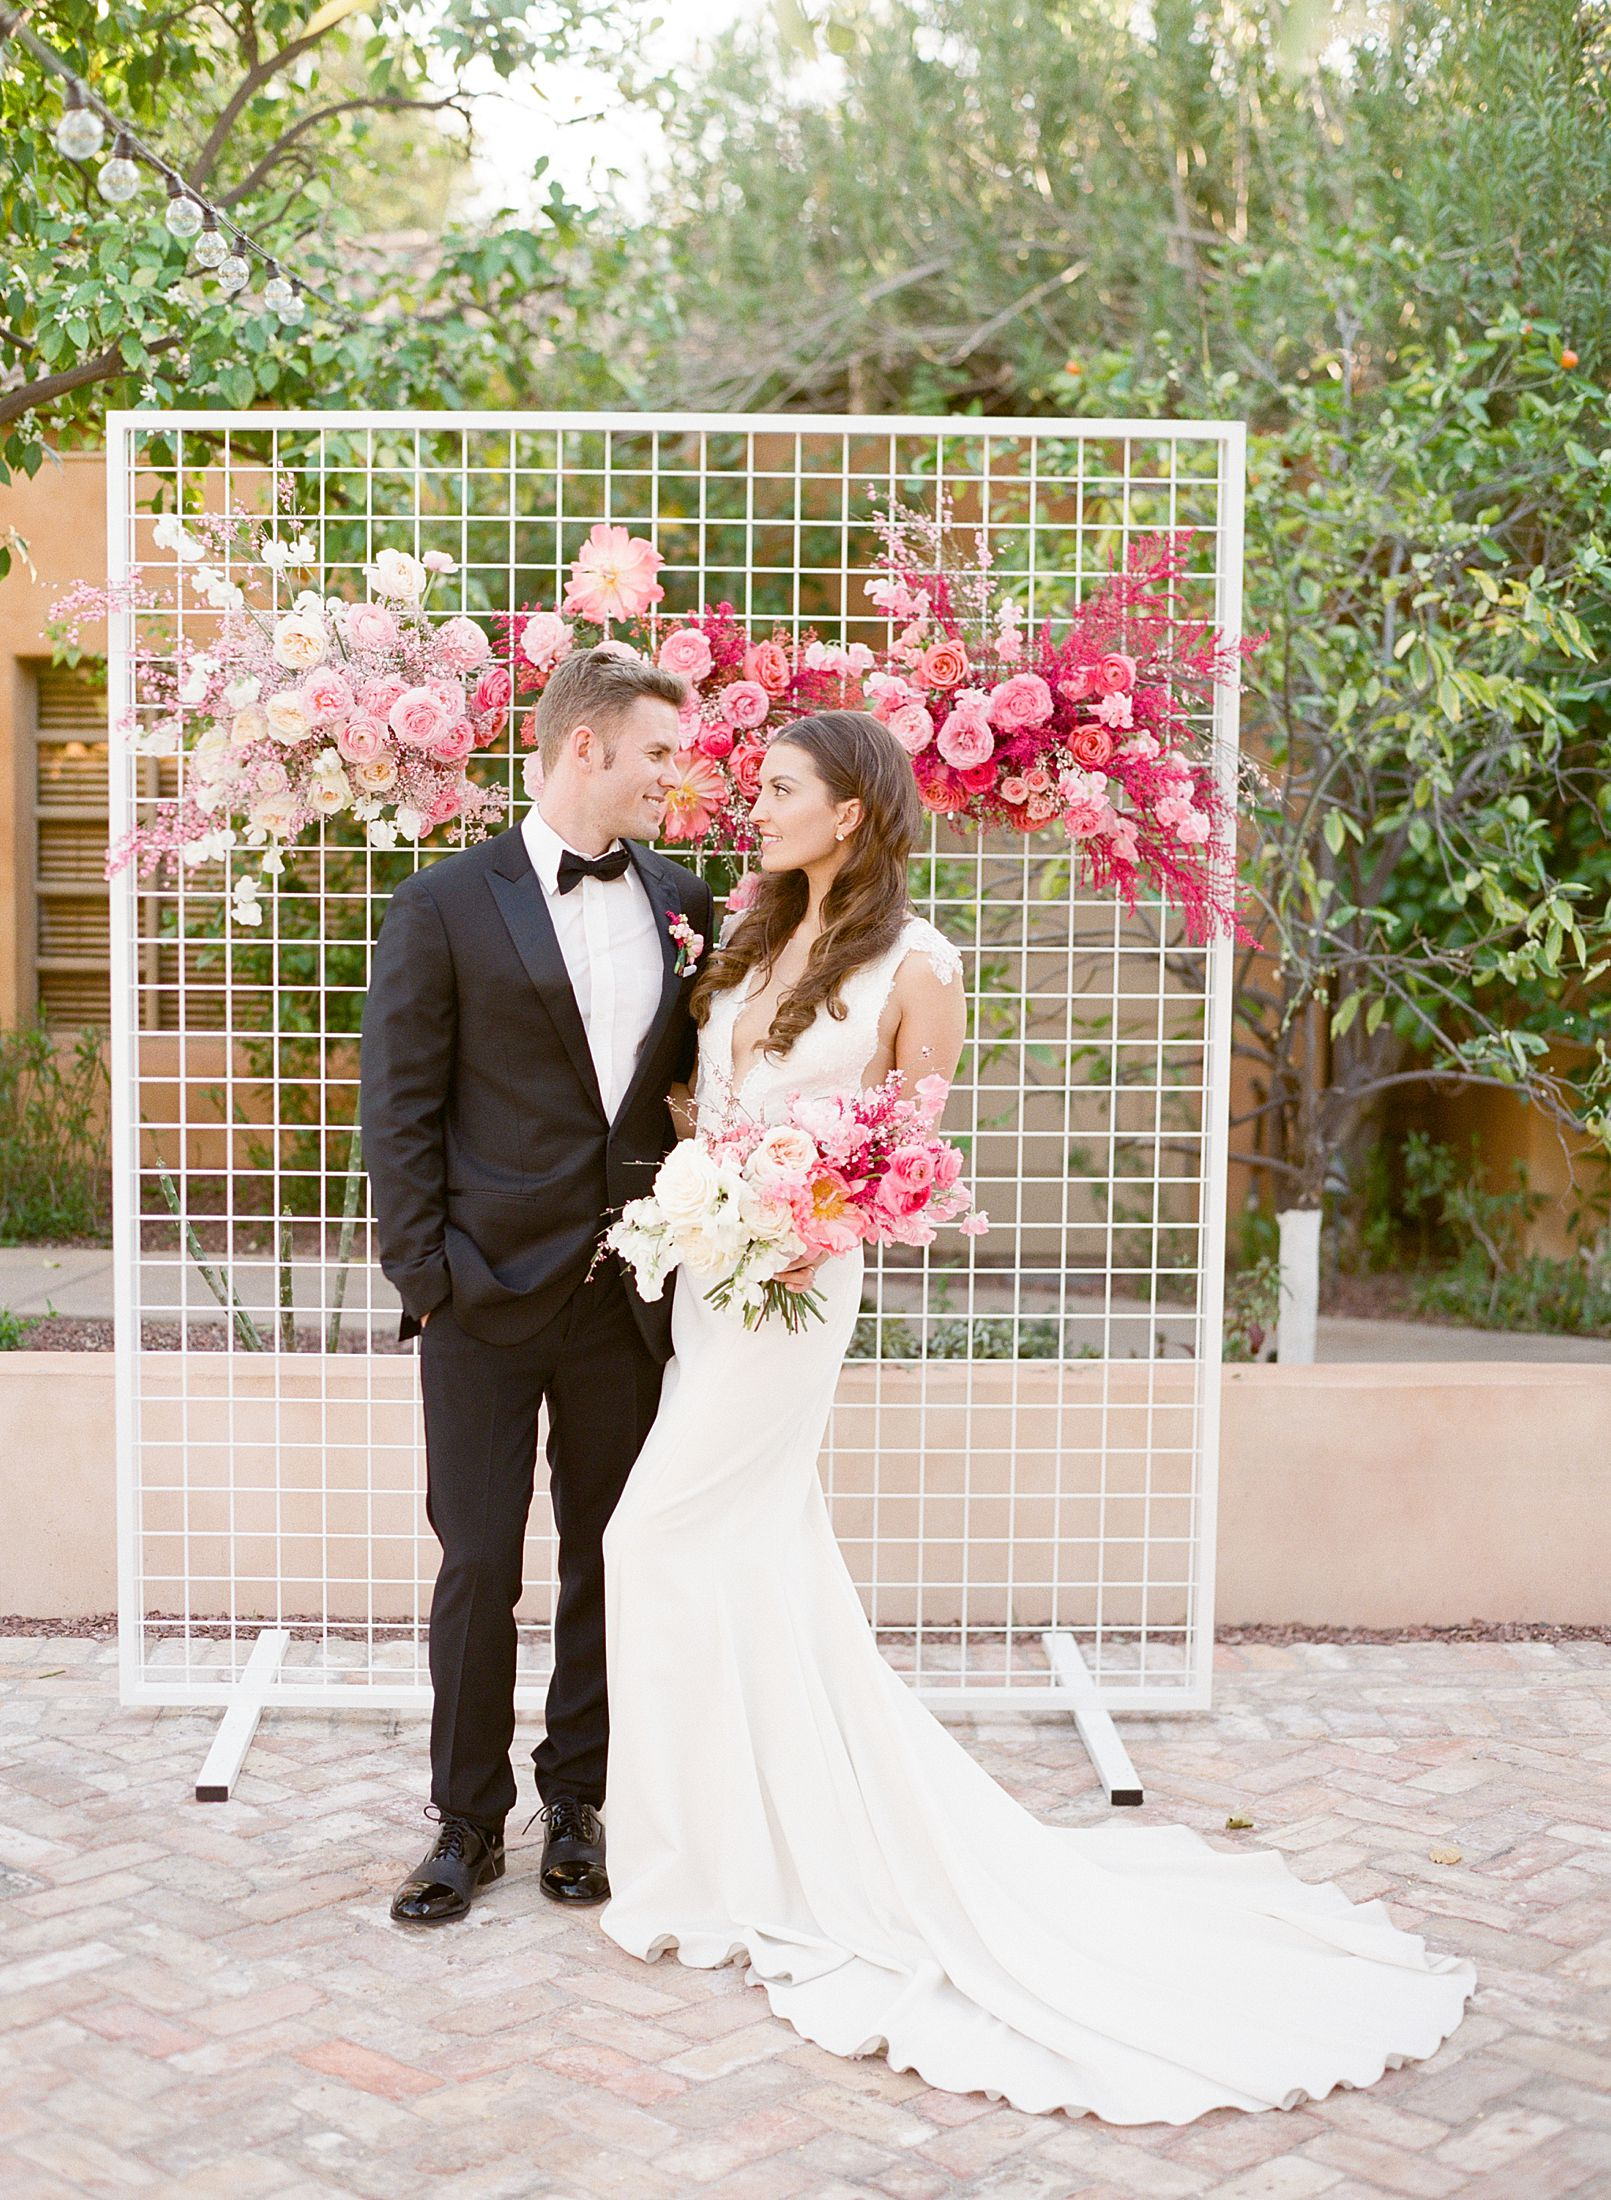 Pink Ombre Wedding Inspiration on Style Me Pretty - Royal Palms Wedding - Scottsdale Wedding - Ashley Baumgartner - Bloom and Blueprint - Wedding Puppies - Bulldog Puppies_0031.jpg